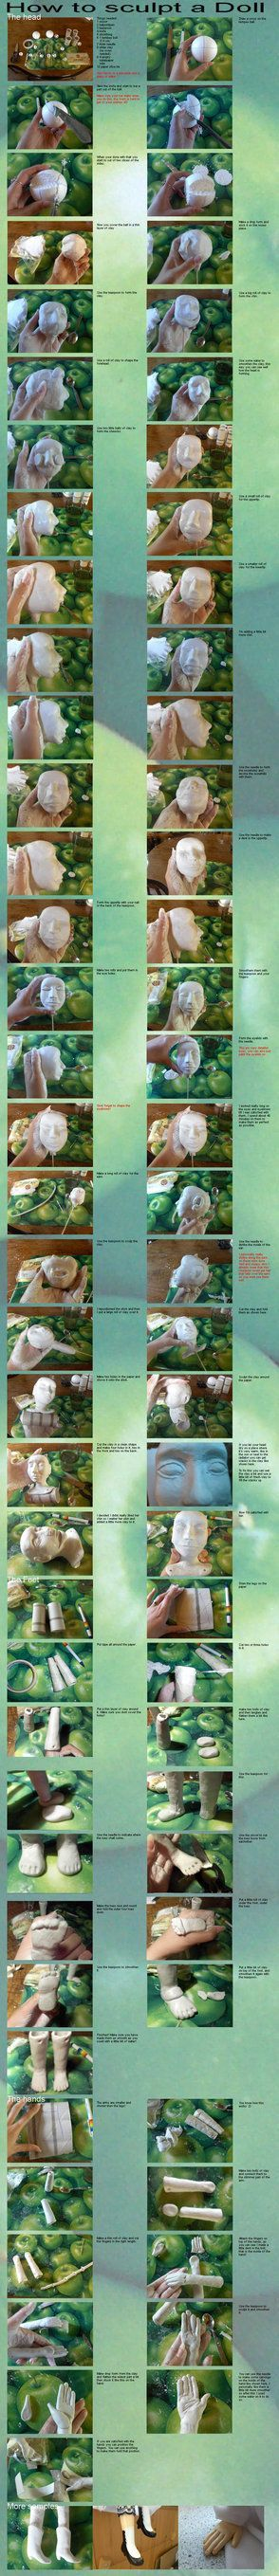 How to sculpt a doll-tutorial- by ~Hamkaastostie on deviantART  clay over styrofoam: